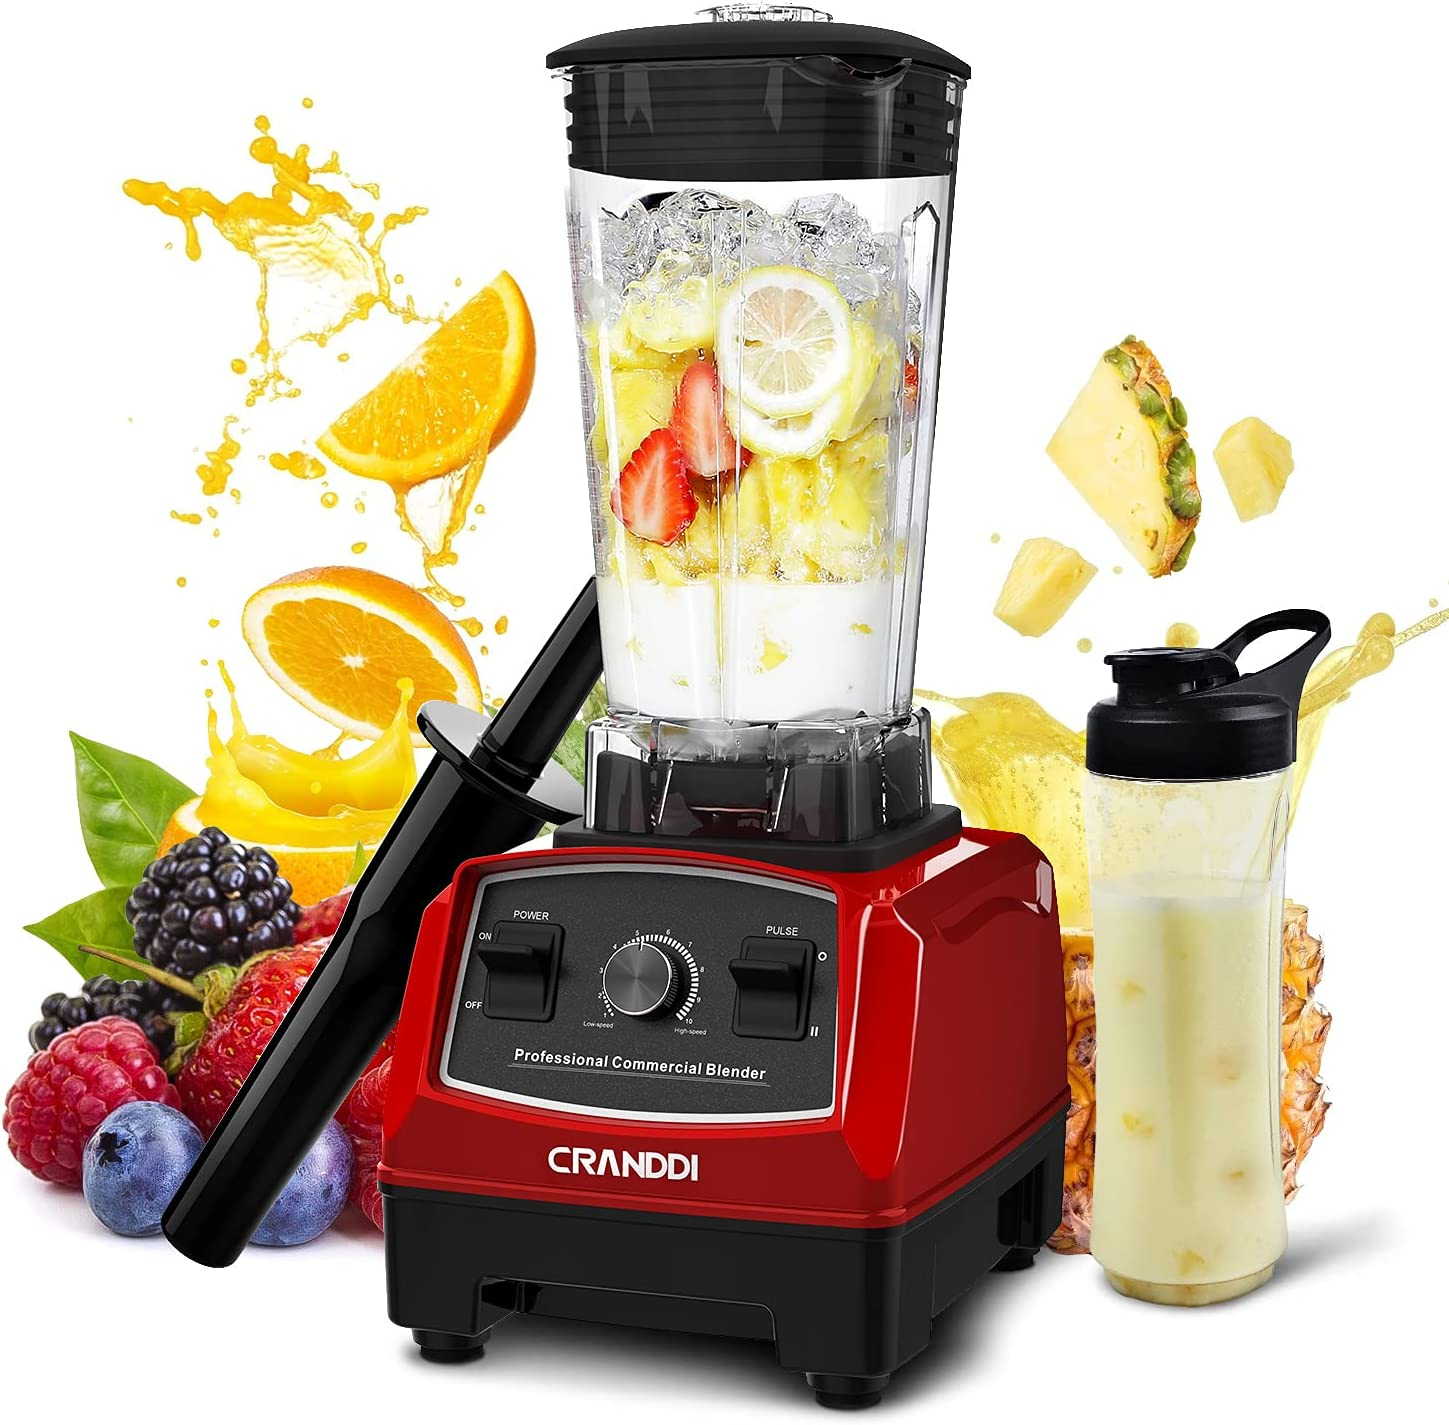 CRANDDI Professional Countertop Blenders for Kitchen,1500W,70oz BPA-Free Jar,10 Speeds Commercial Blenders for Shakes and Smoothies,Easy to Clean,YL-010-R New